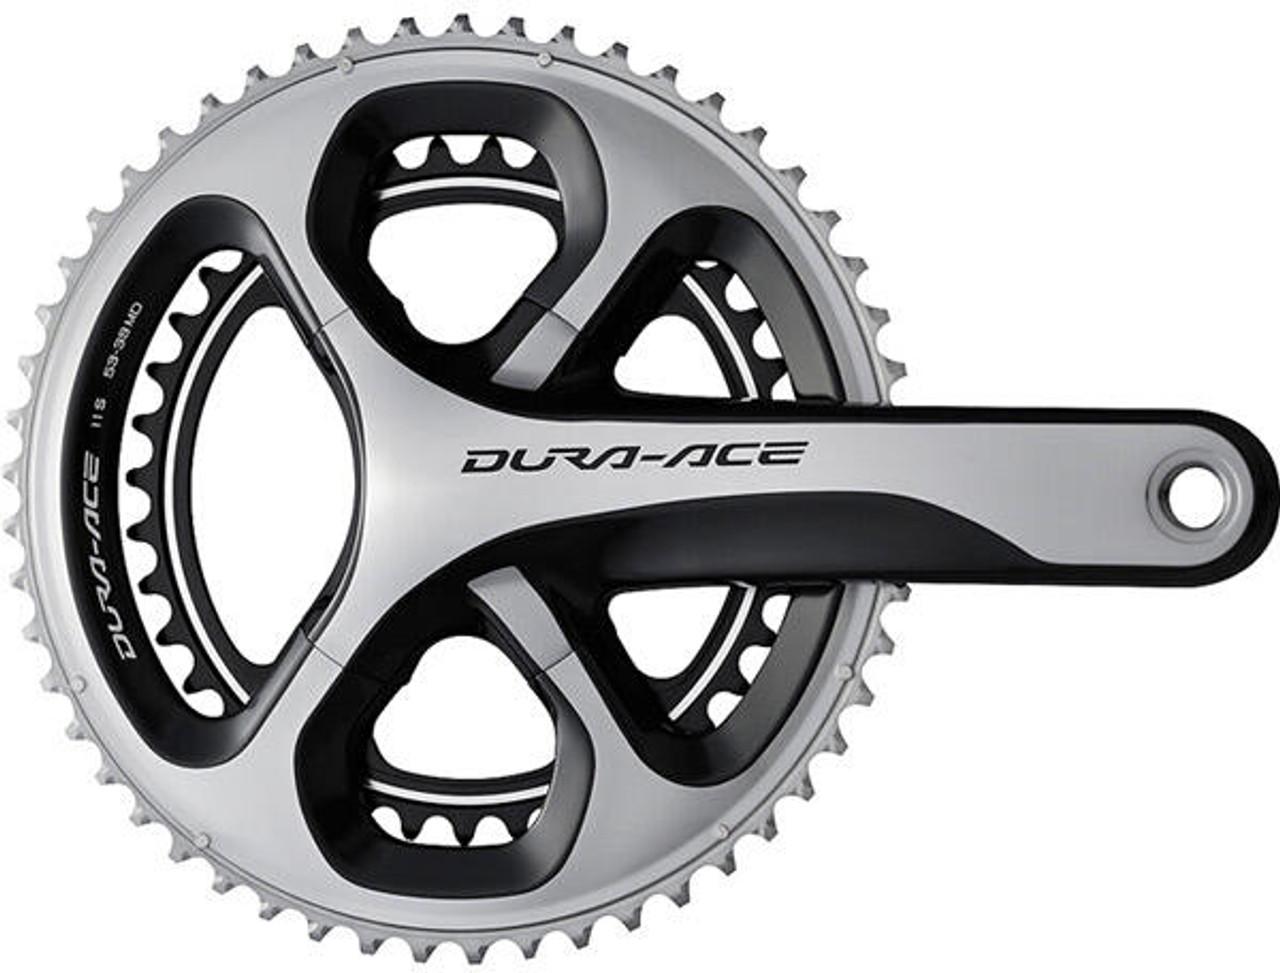 Shimano Dura Ace 9000 11 Speed Double Chainset 172.5mm 39/53